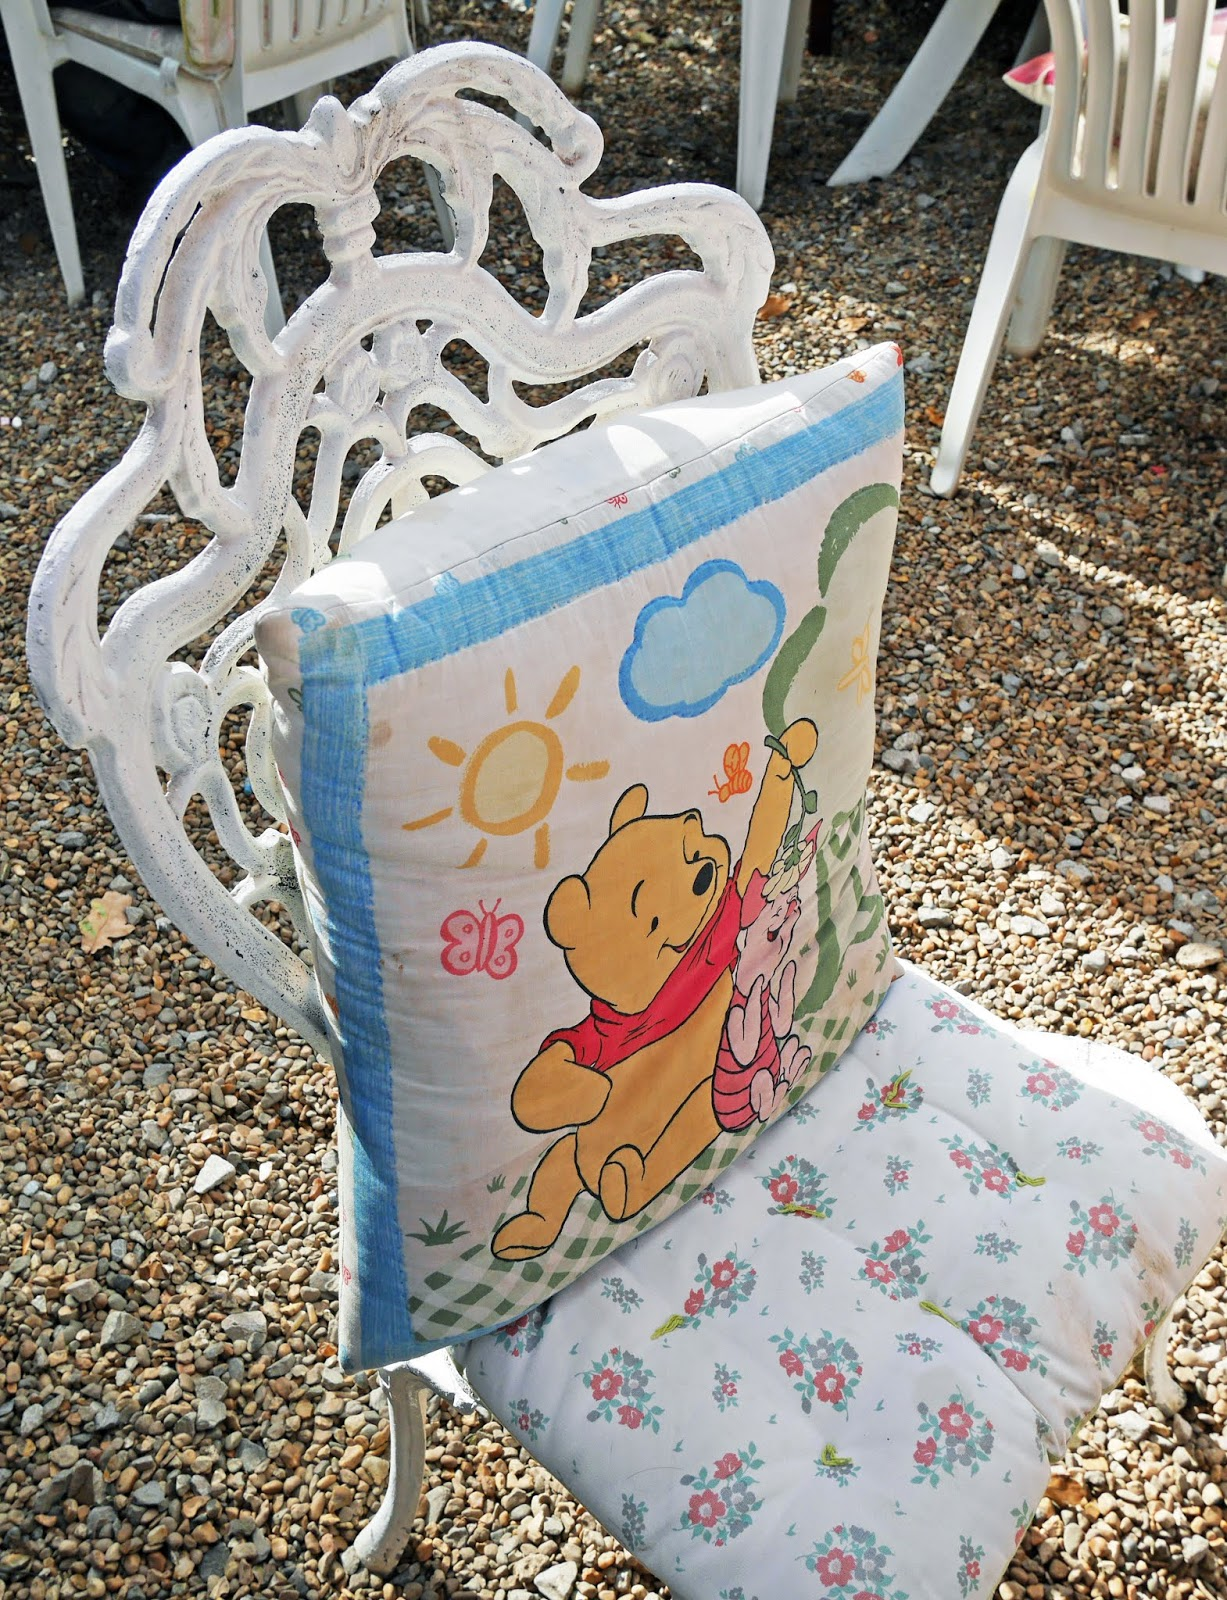 Winnie the Pooh cushion at Piglet's Tearoom in Ashdown Forest